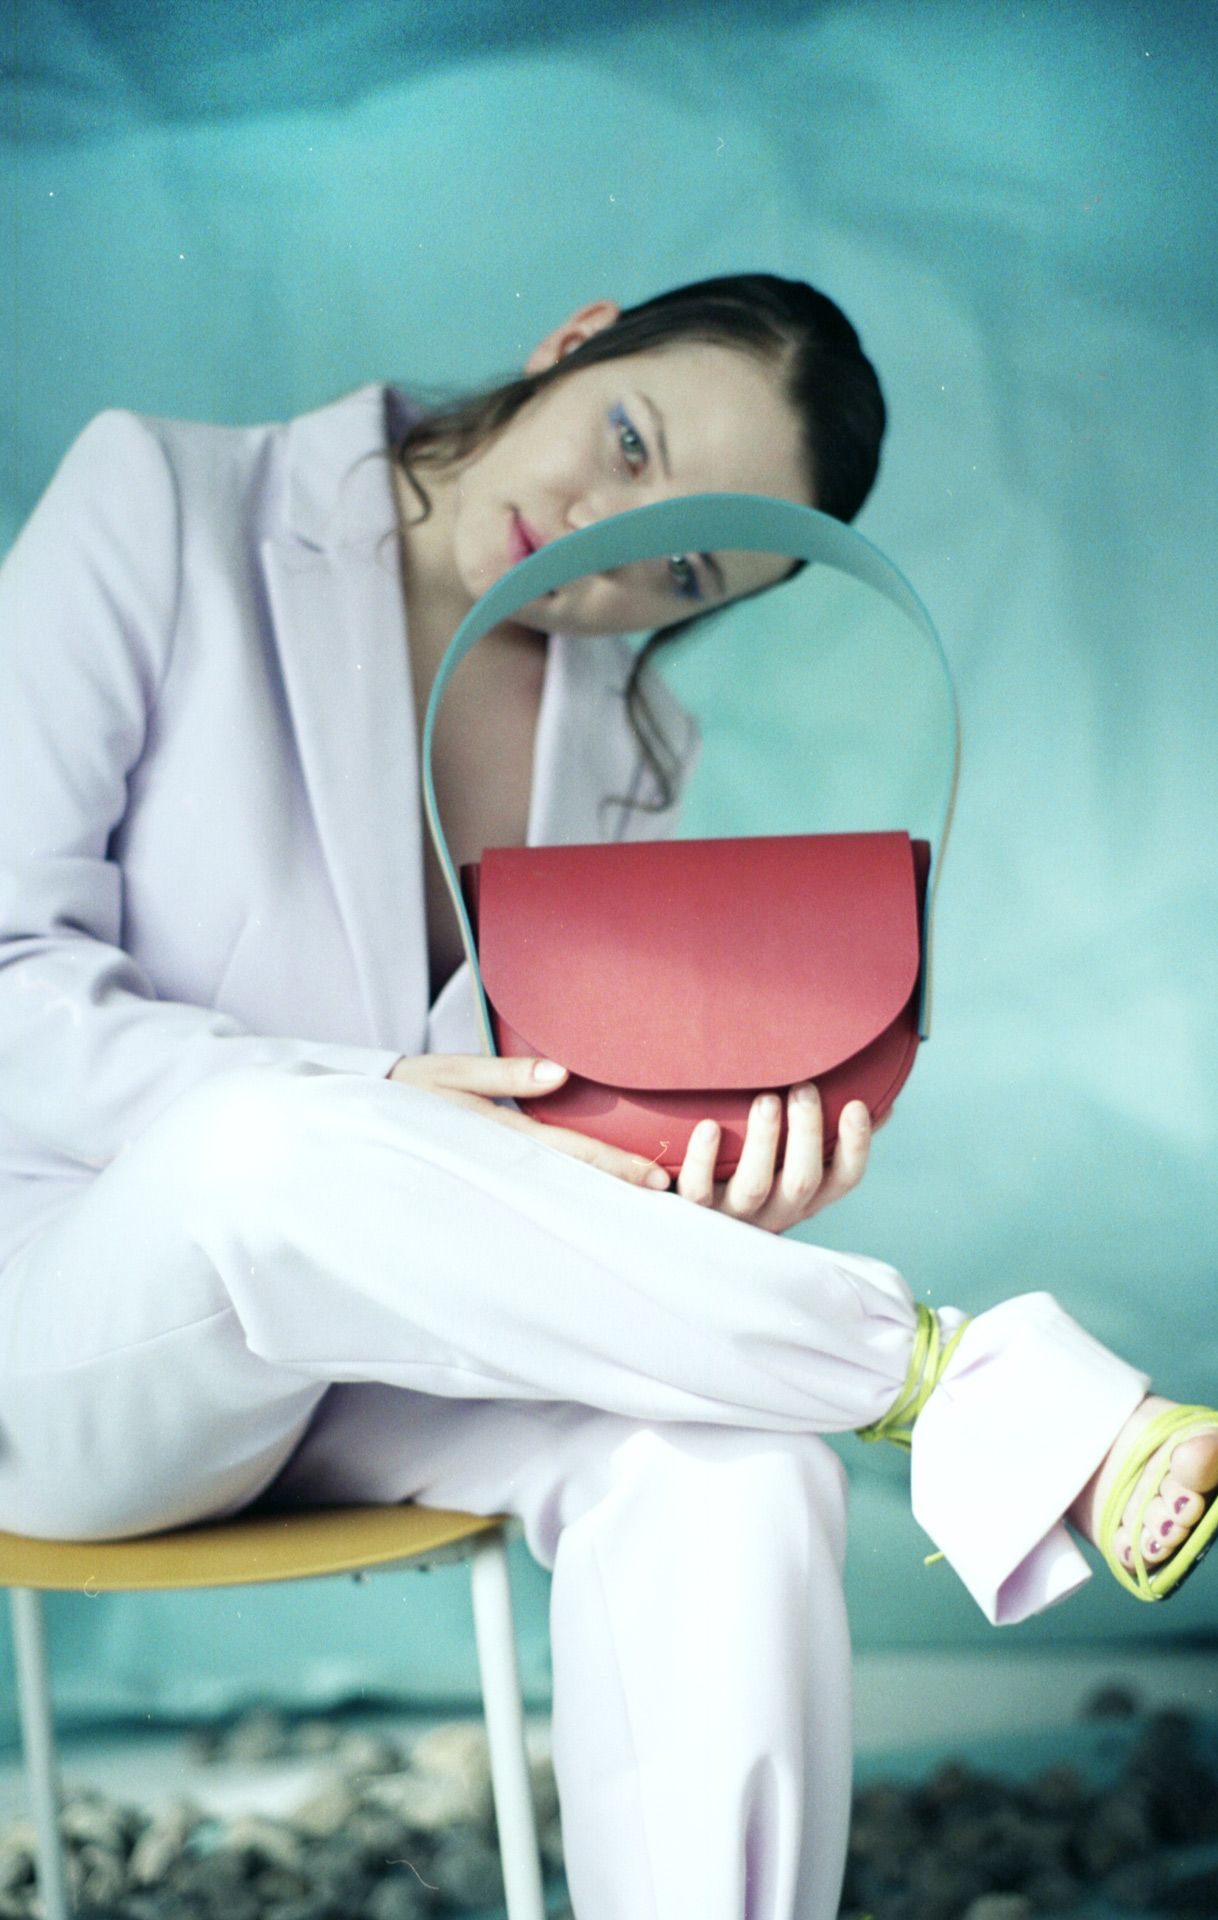 female model sitting on chair wearing light pastel pink suit jacket and pants holding small hot pink leather bag with light blue strap with light blue background for bouquet Montreal-brand Spring-Summer 2020 campaign with styling and artistic direction by Studio TB